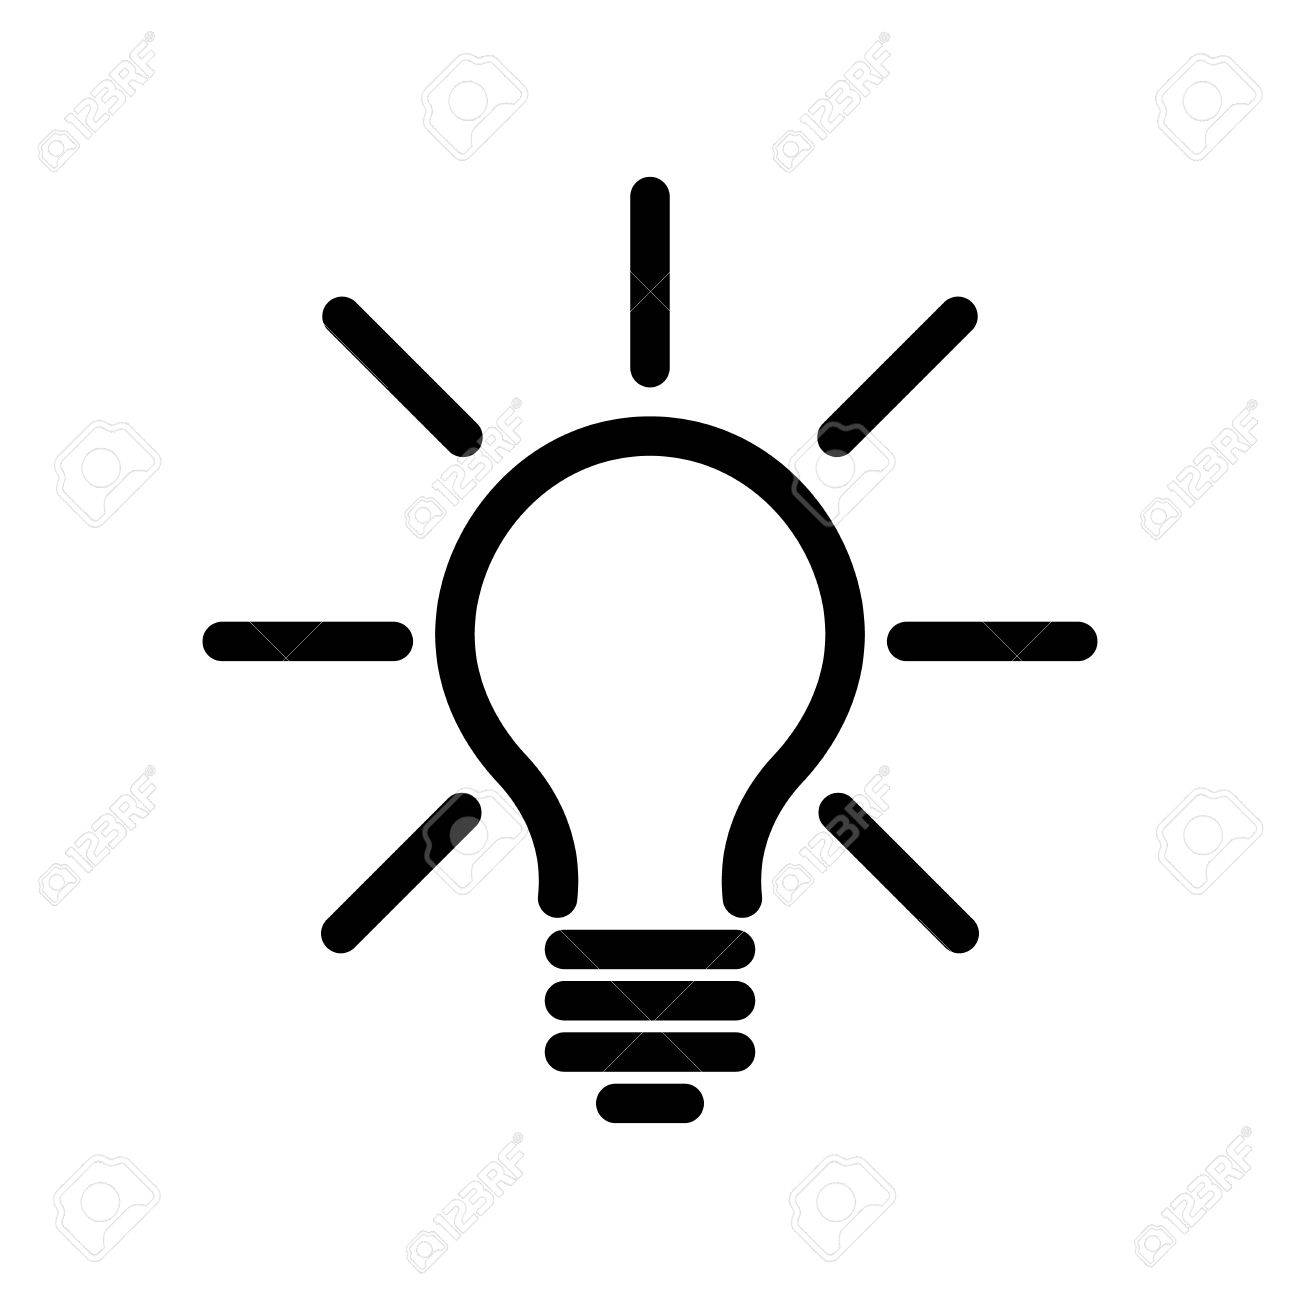 Light Bulb Icon Simple Black Line Symbol Isolated On White Background Idea